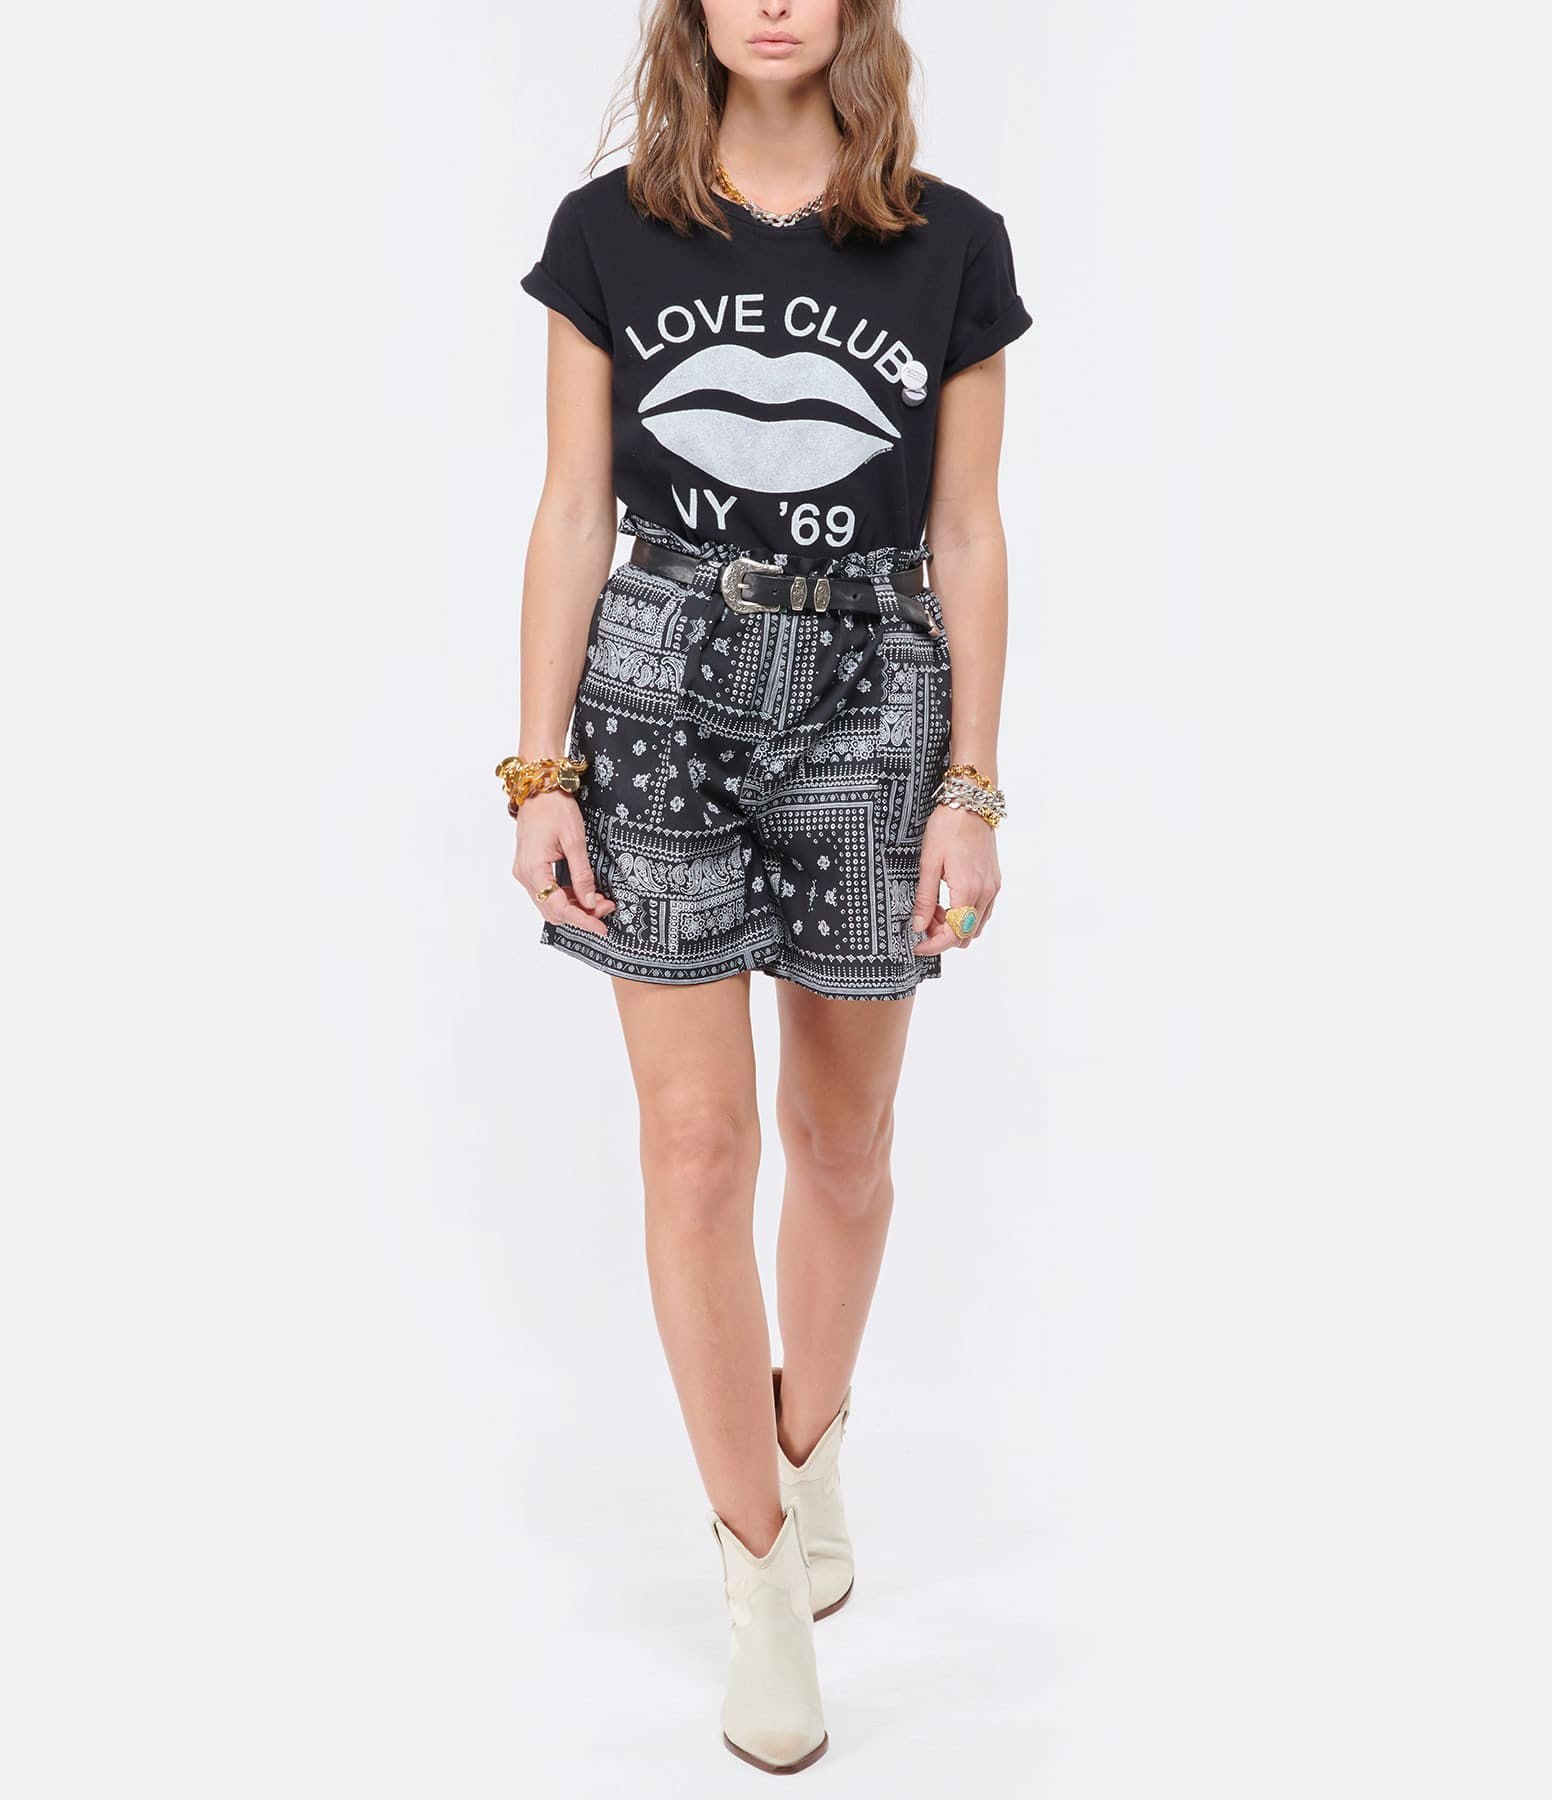 NEWTONE - Tee-shirt Starlight Love Club Coton Noir